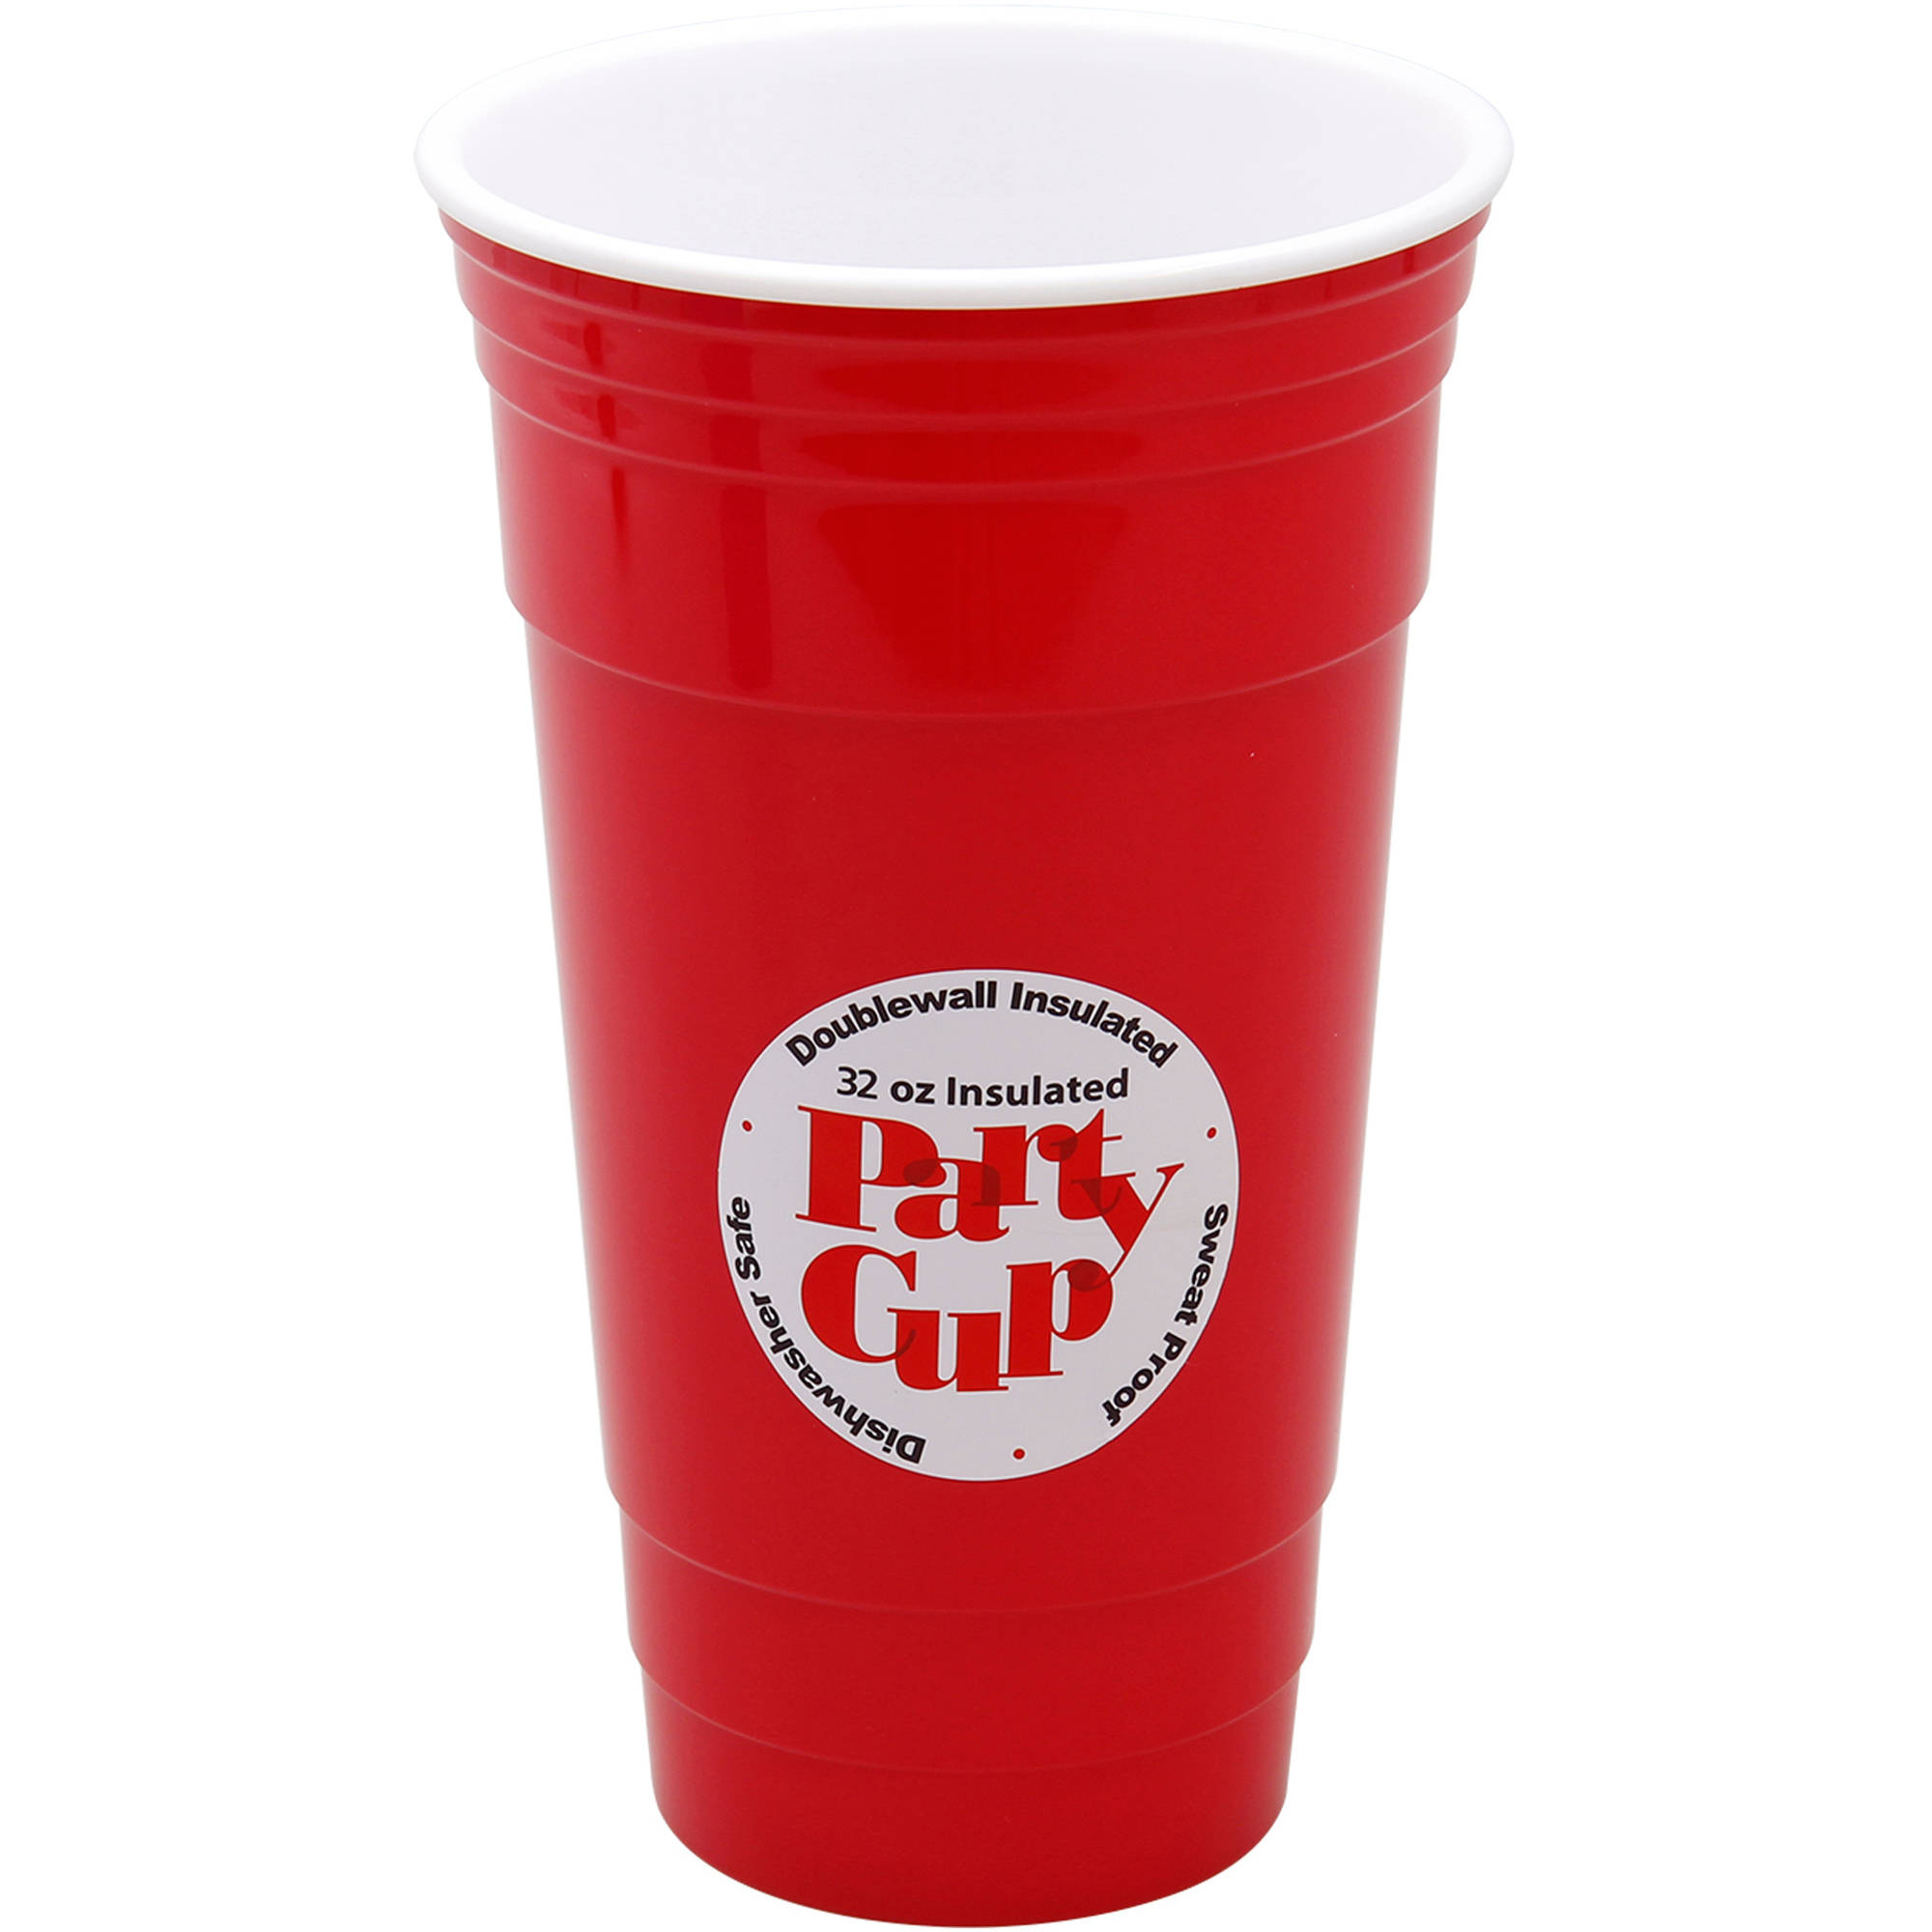 32 oz Double-Wall Party Cup, Red